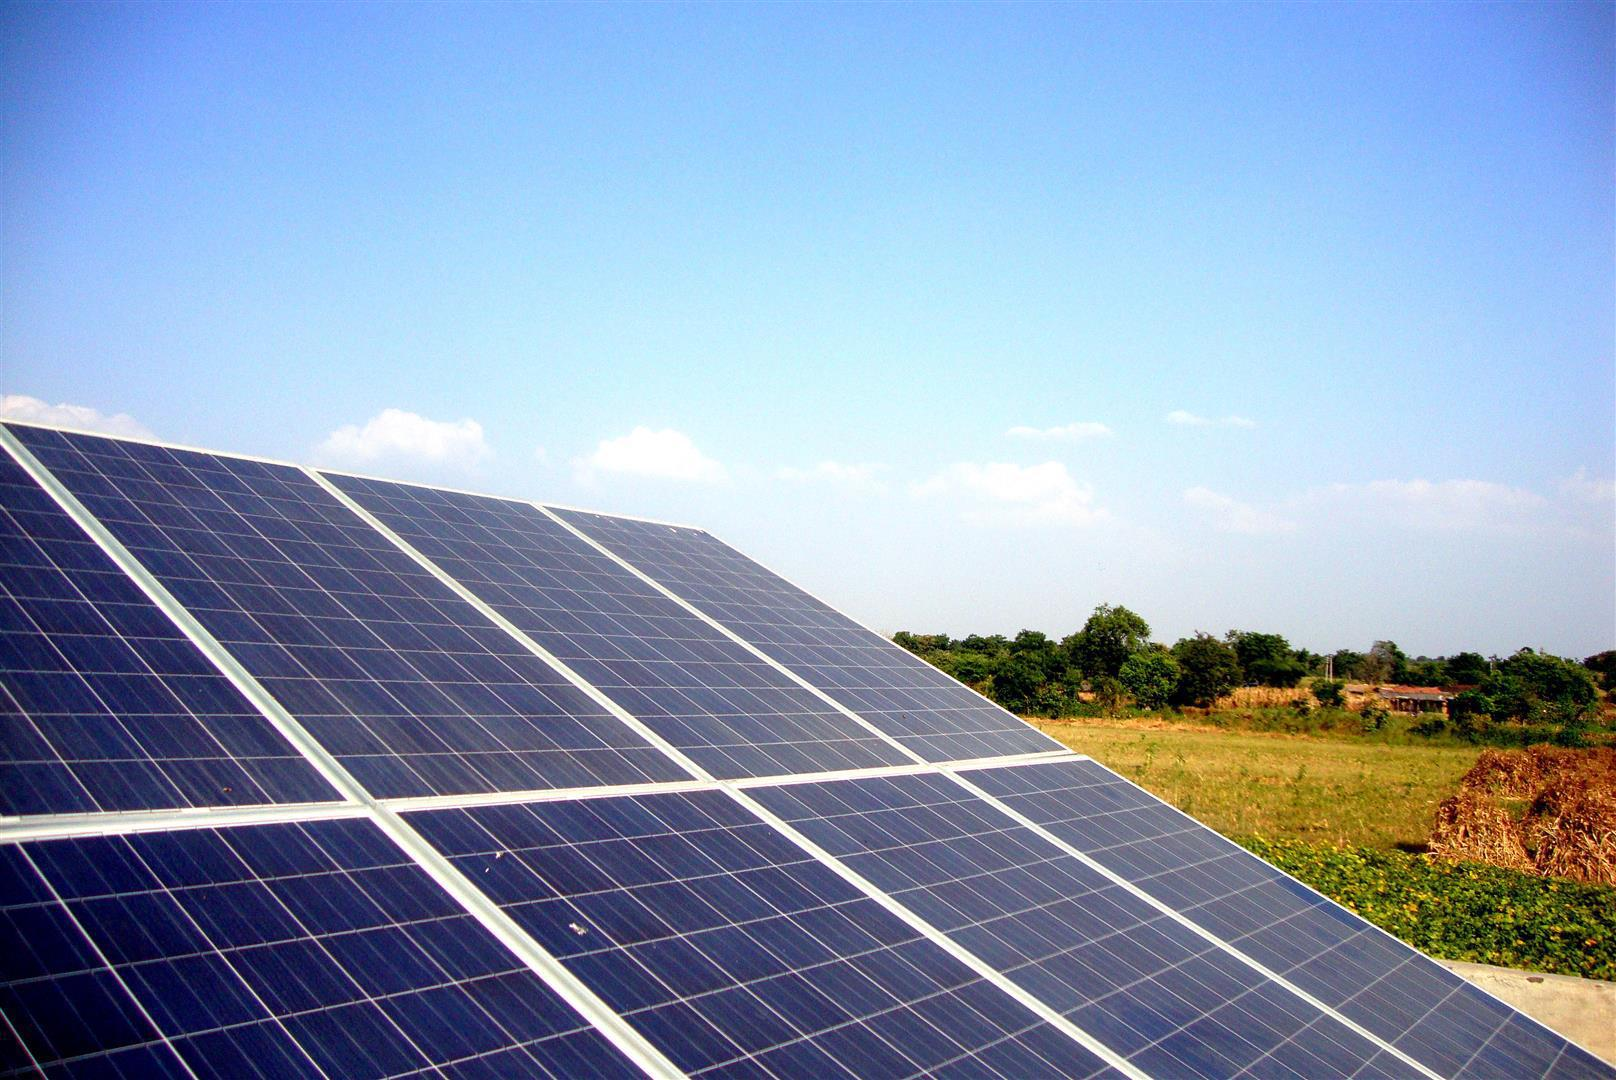 solar energy industry in india India energy outlook world energy outlook special report together secure sustainable india outlook energy 2015 for more information, and the free download of this report, please visit.